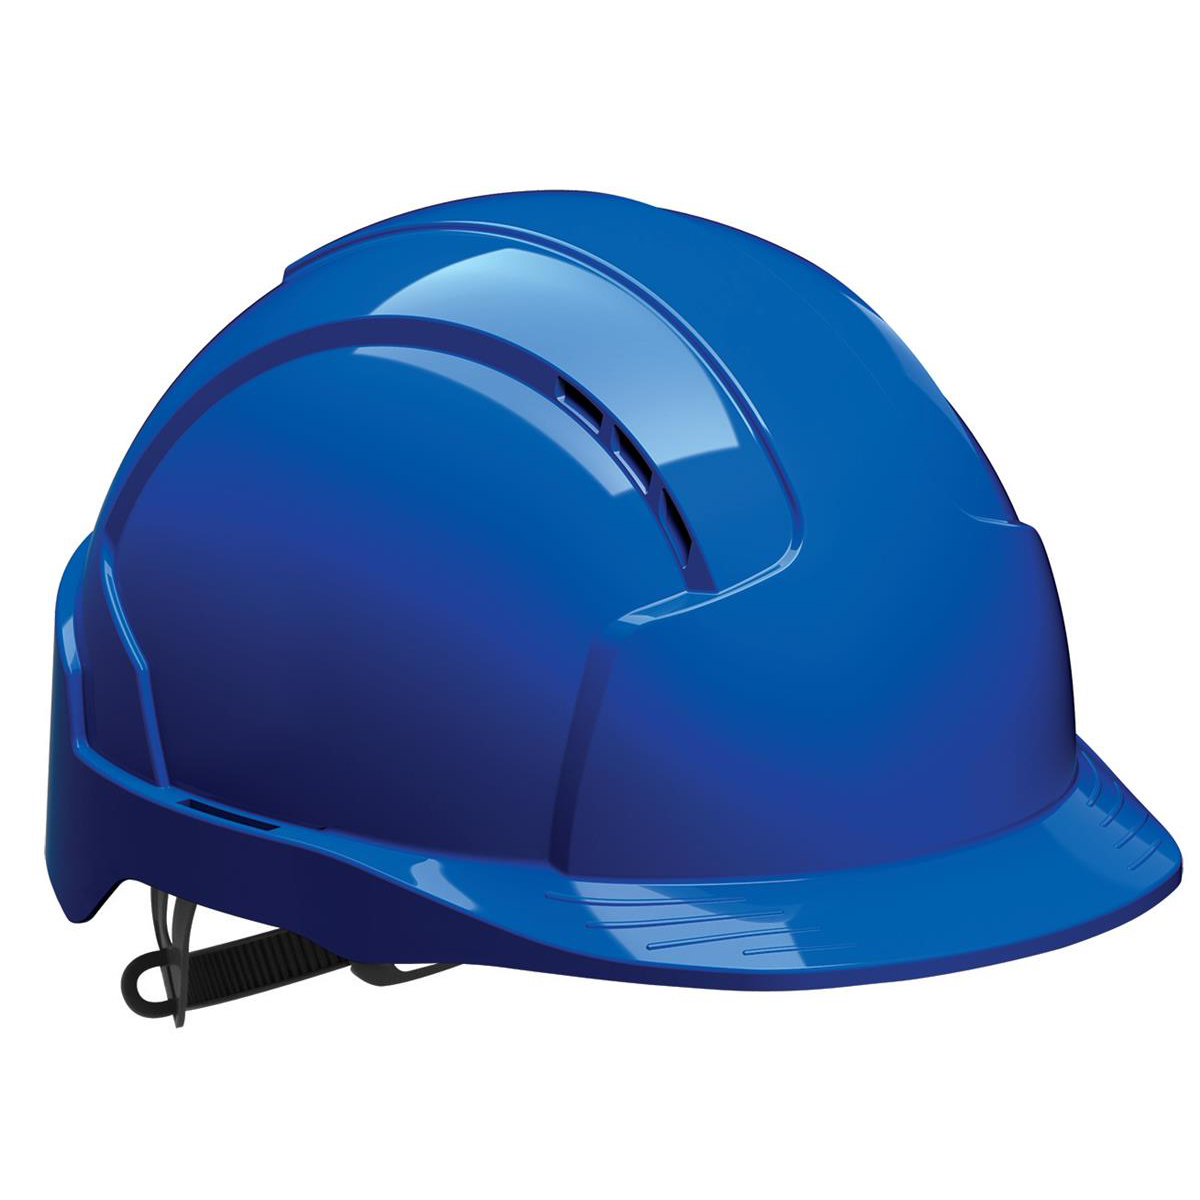 Safety helmets JSP EVOLite Safety Helmet ABS 6-point Terylene Harness EN397 Standard Blue Ref AJB160-000-500